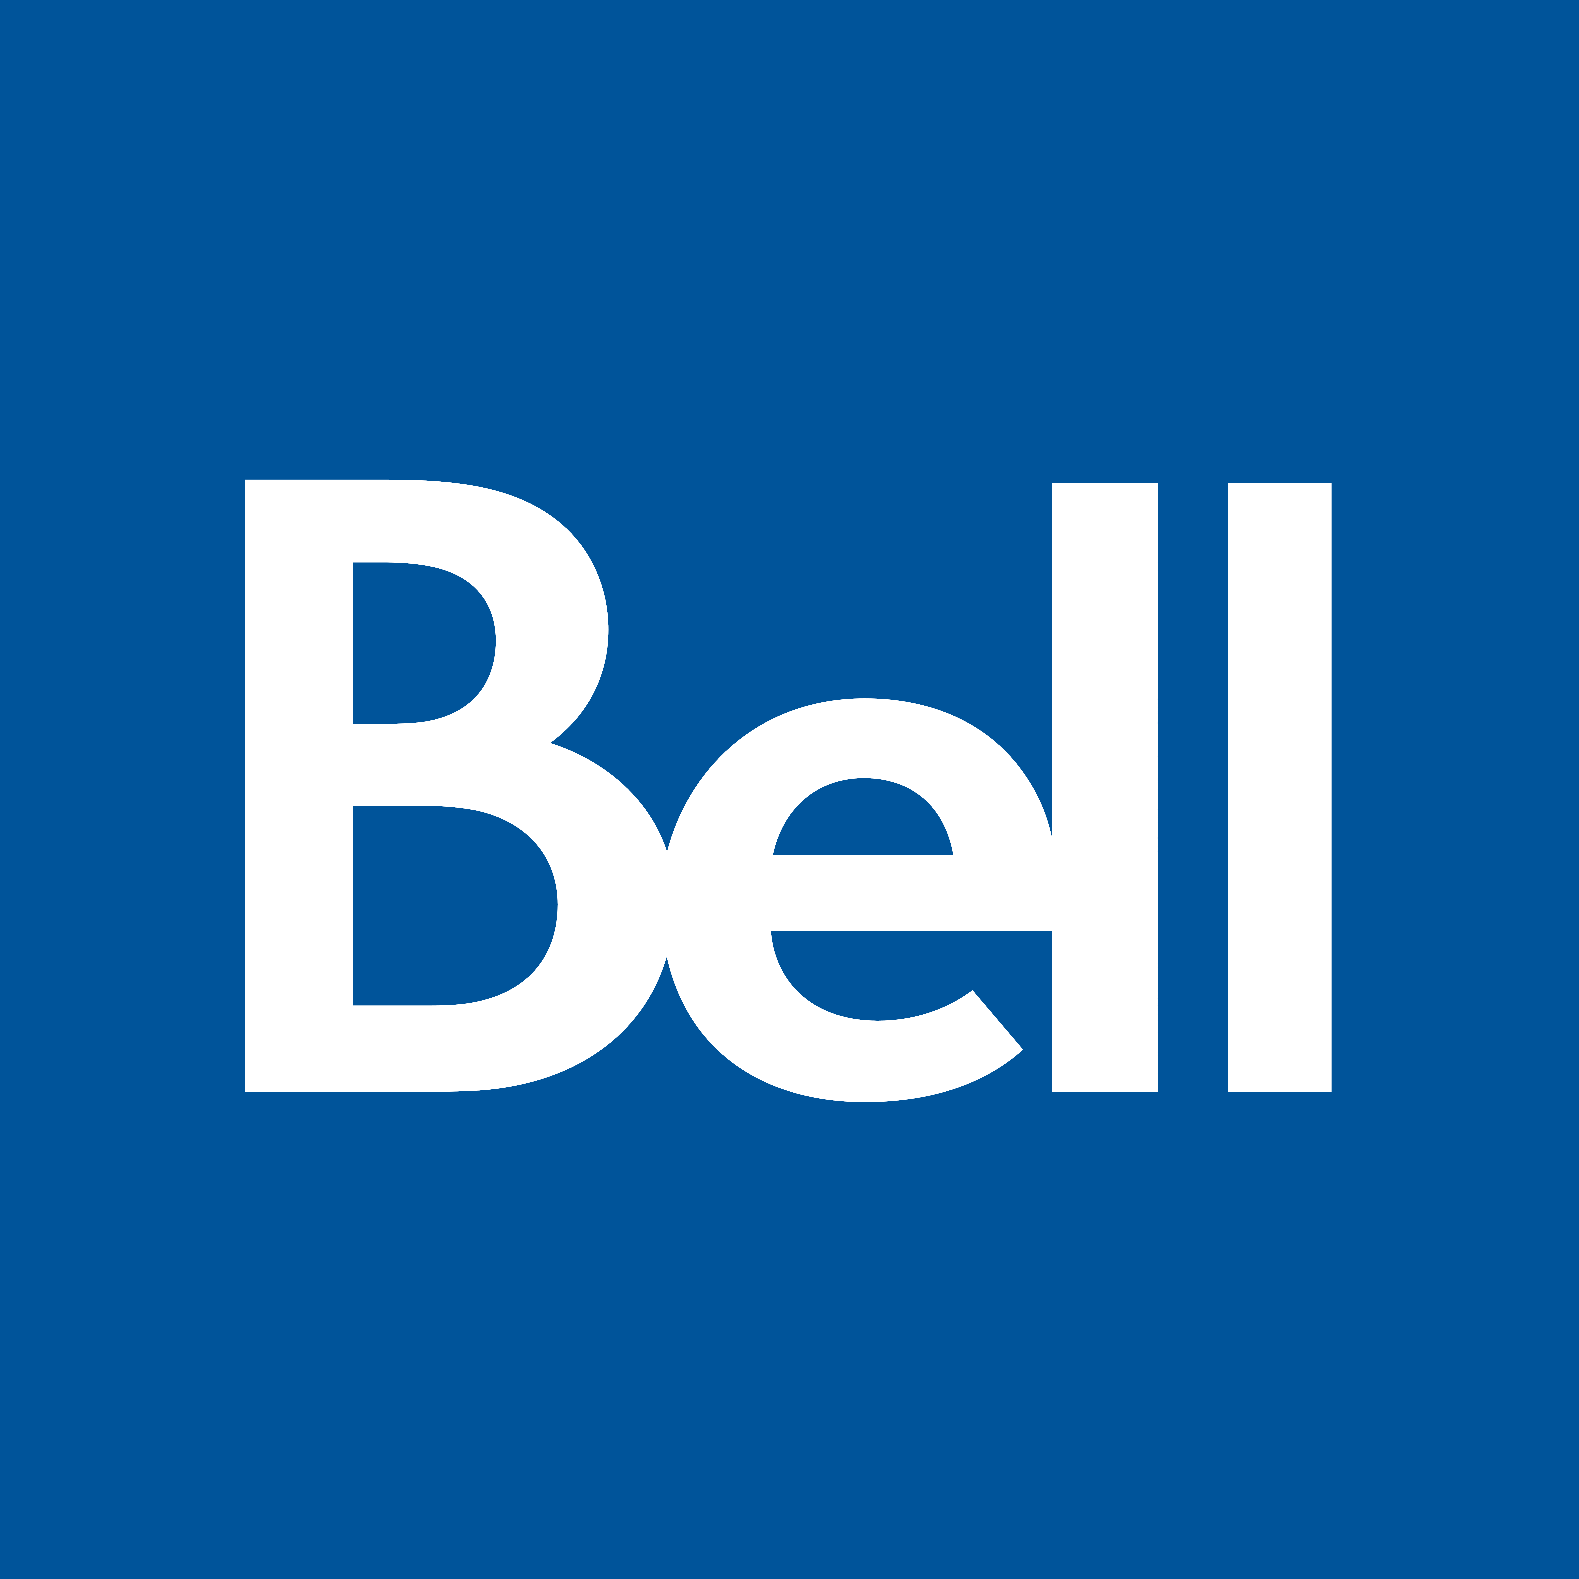 Bell Canada iPhone 3GS,3GS,4,4S,5,iPad,5S,5C,6,6S,SE,7,8,X Unlock